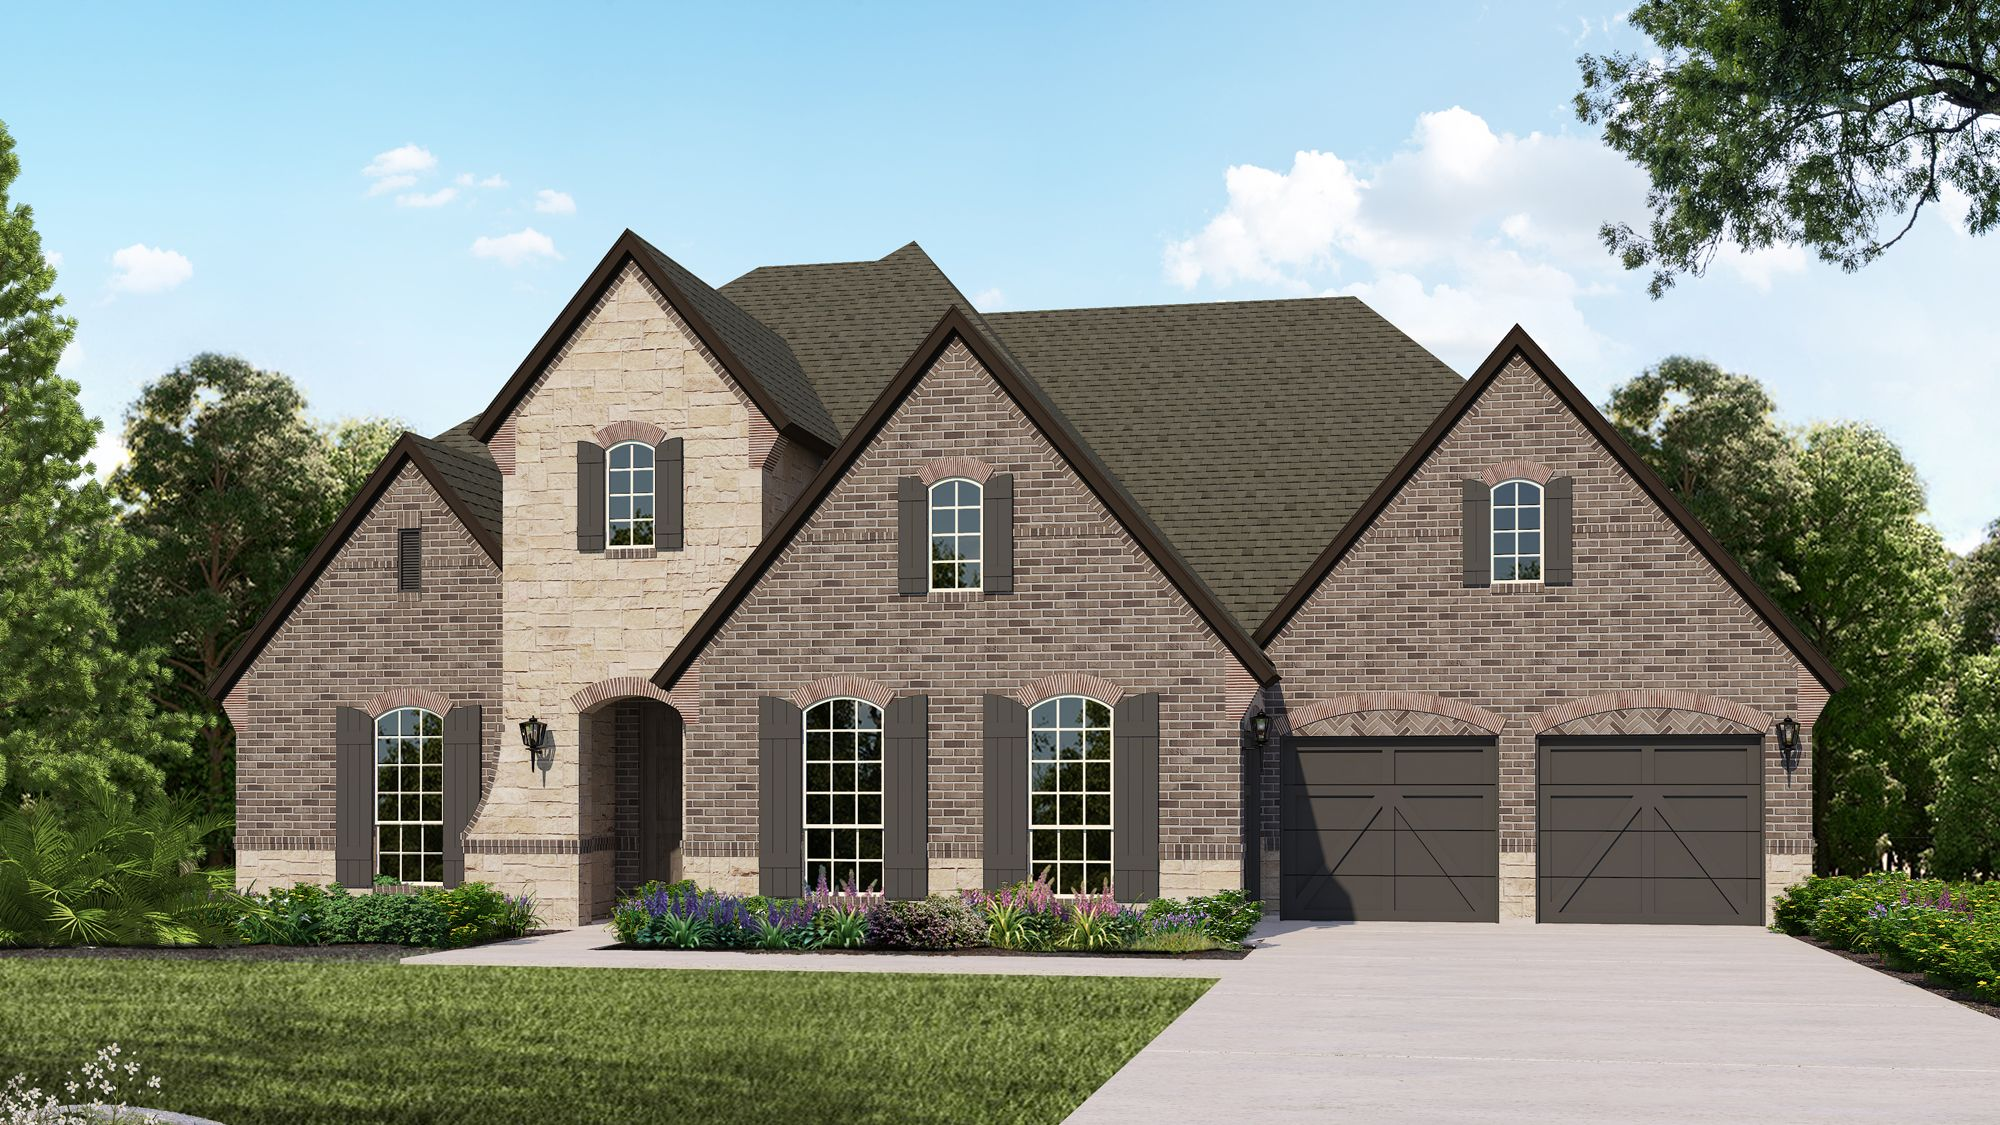 Plan B834 Elevation C with Stone